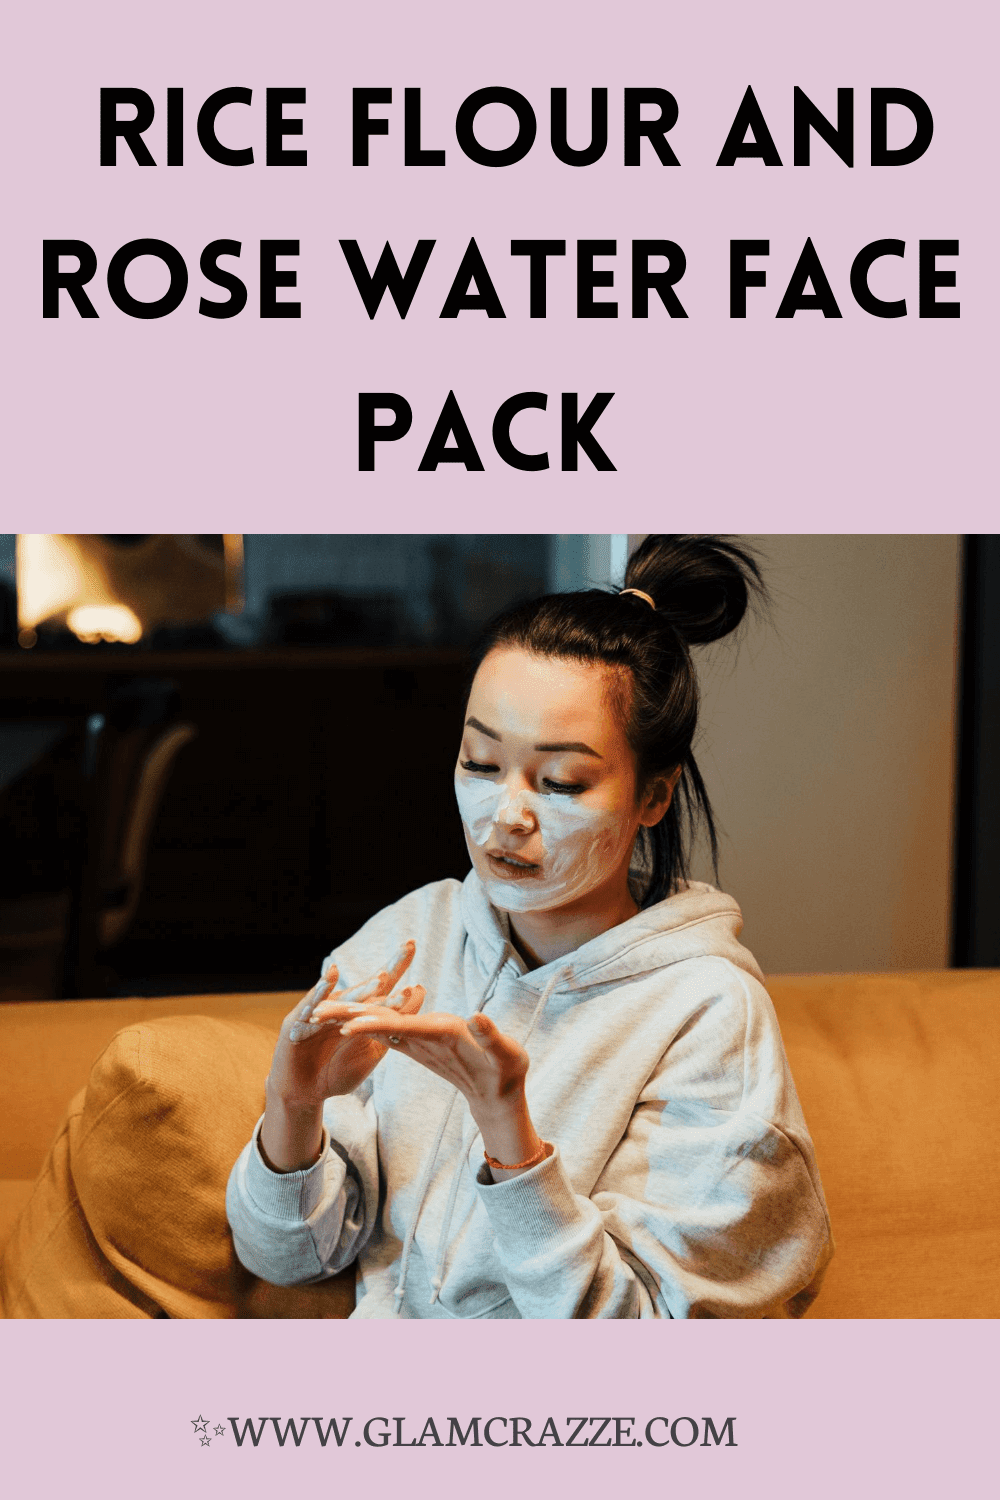 Rice flour and rose water face pack for glowing skin